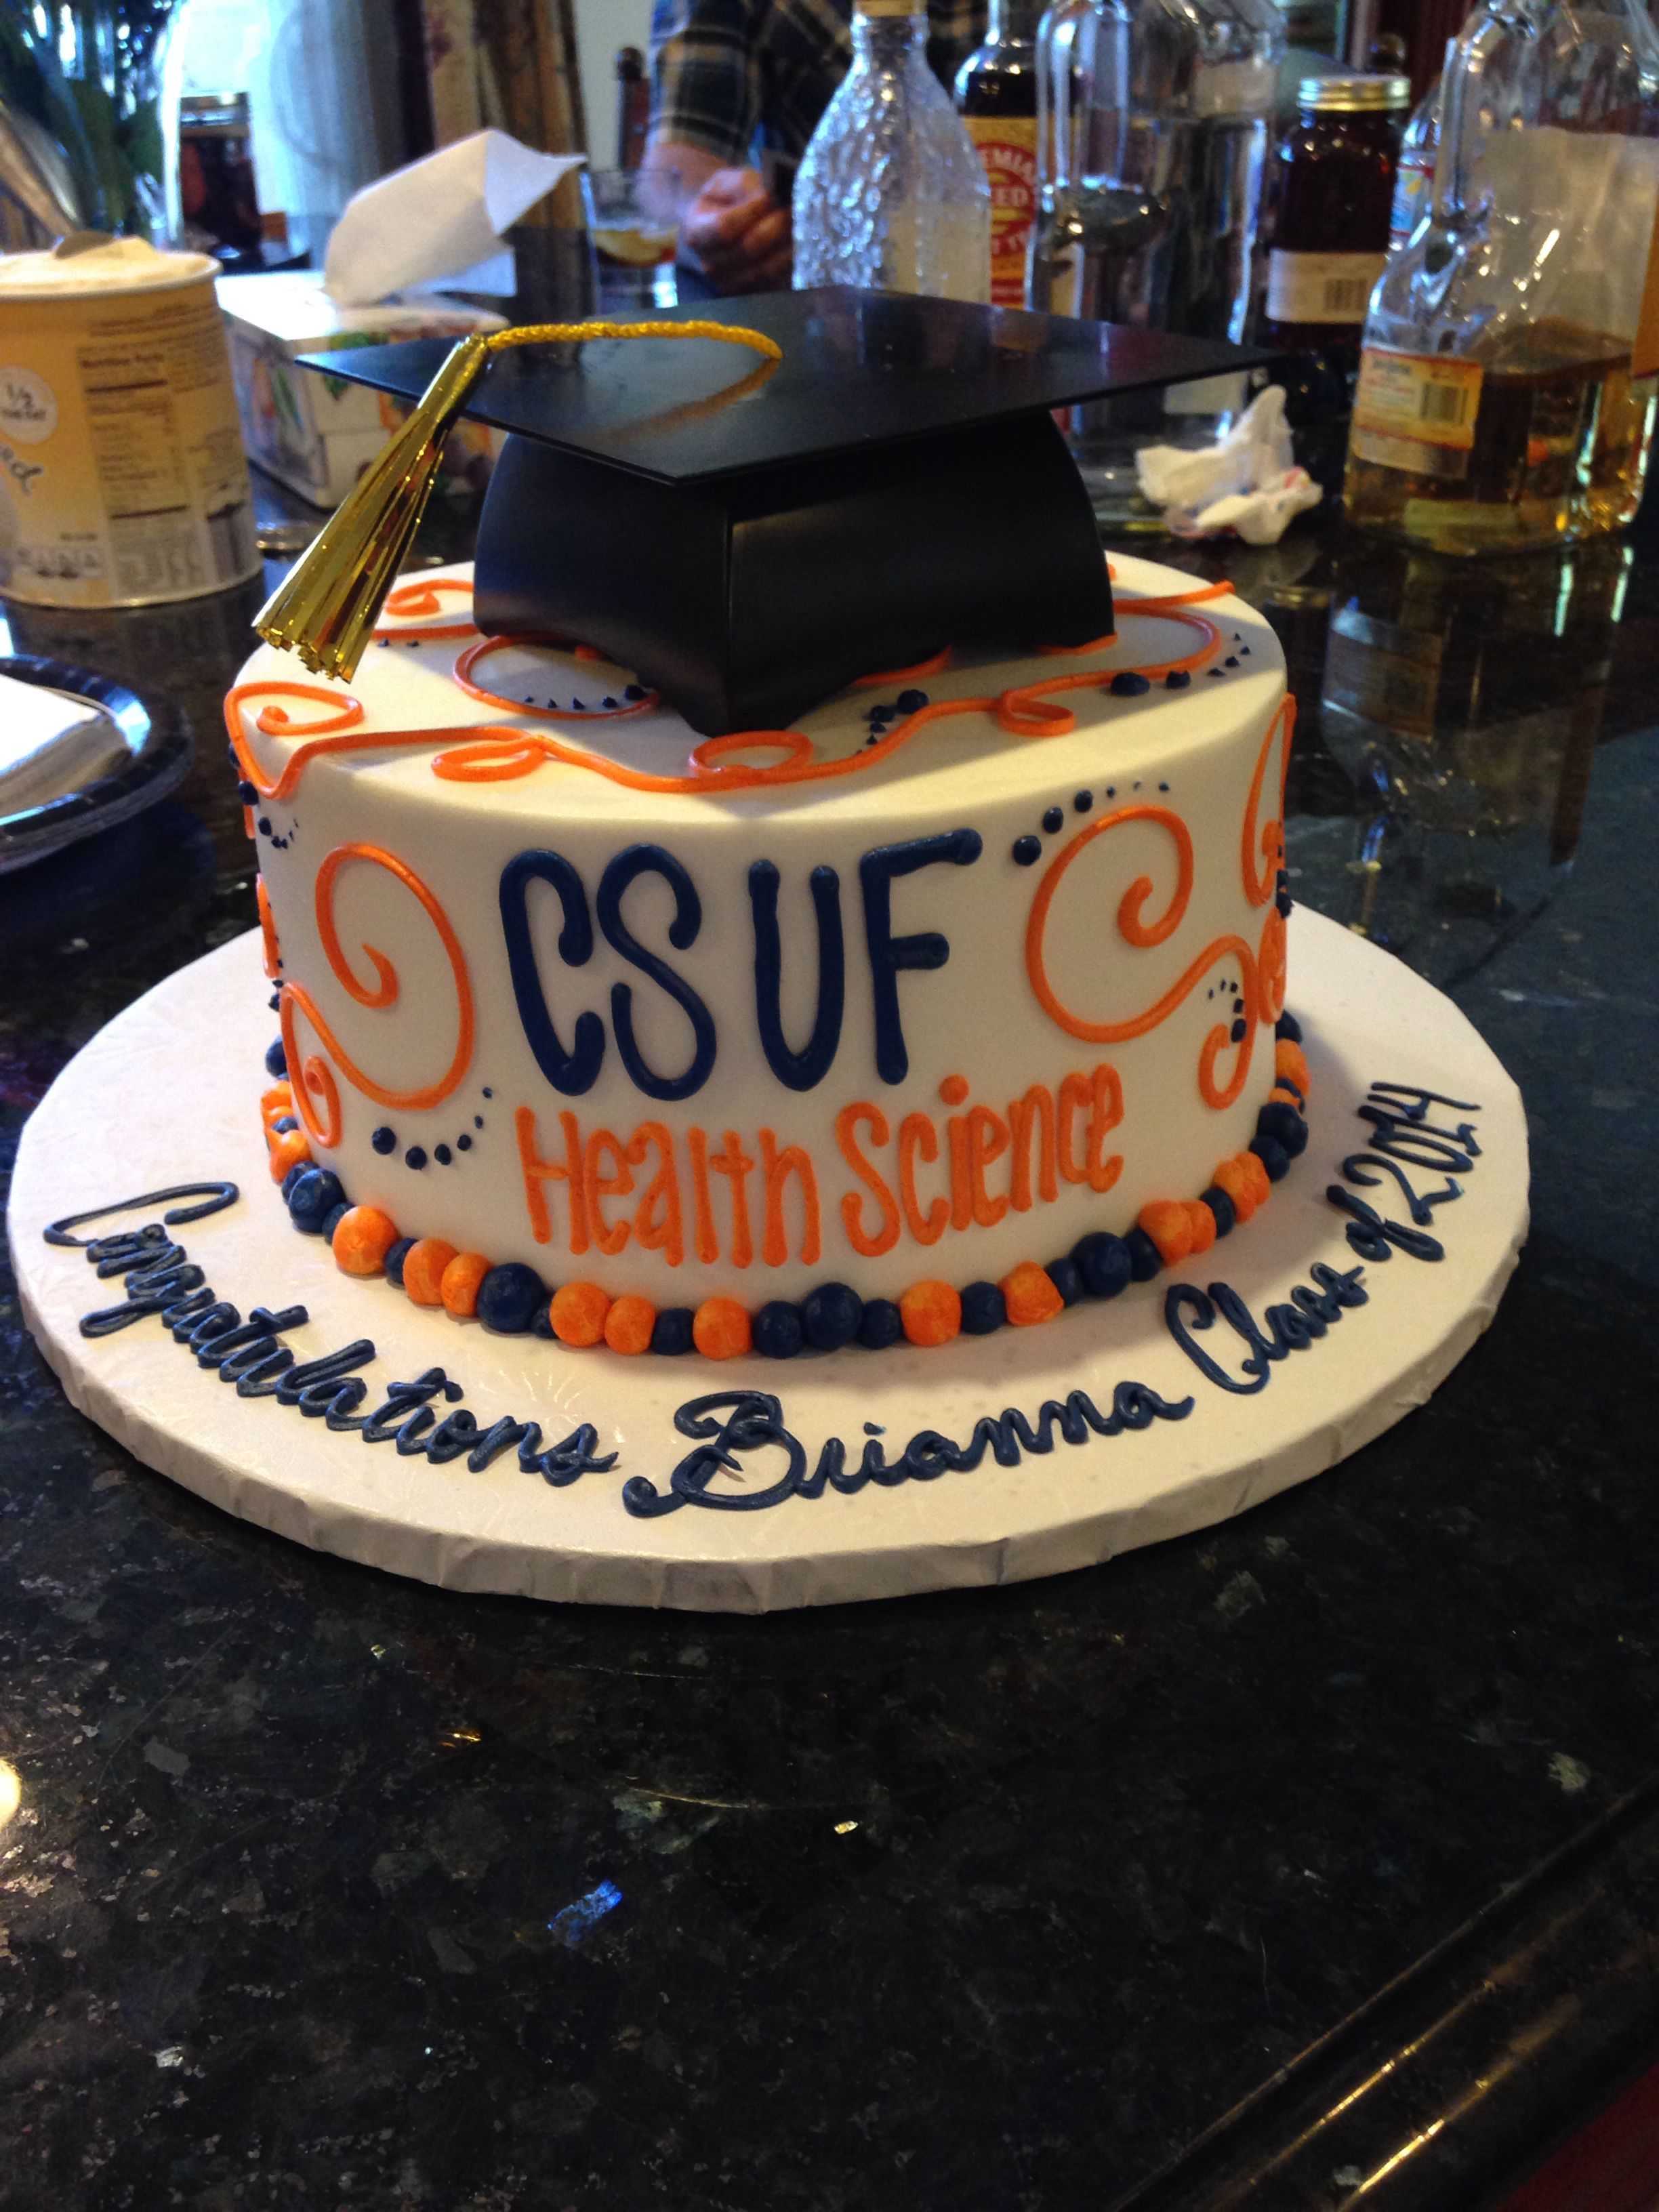 Csuf Graduation Cake From The Great Dane Baking Co In Los